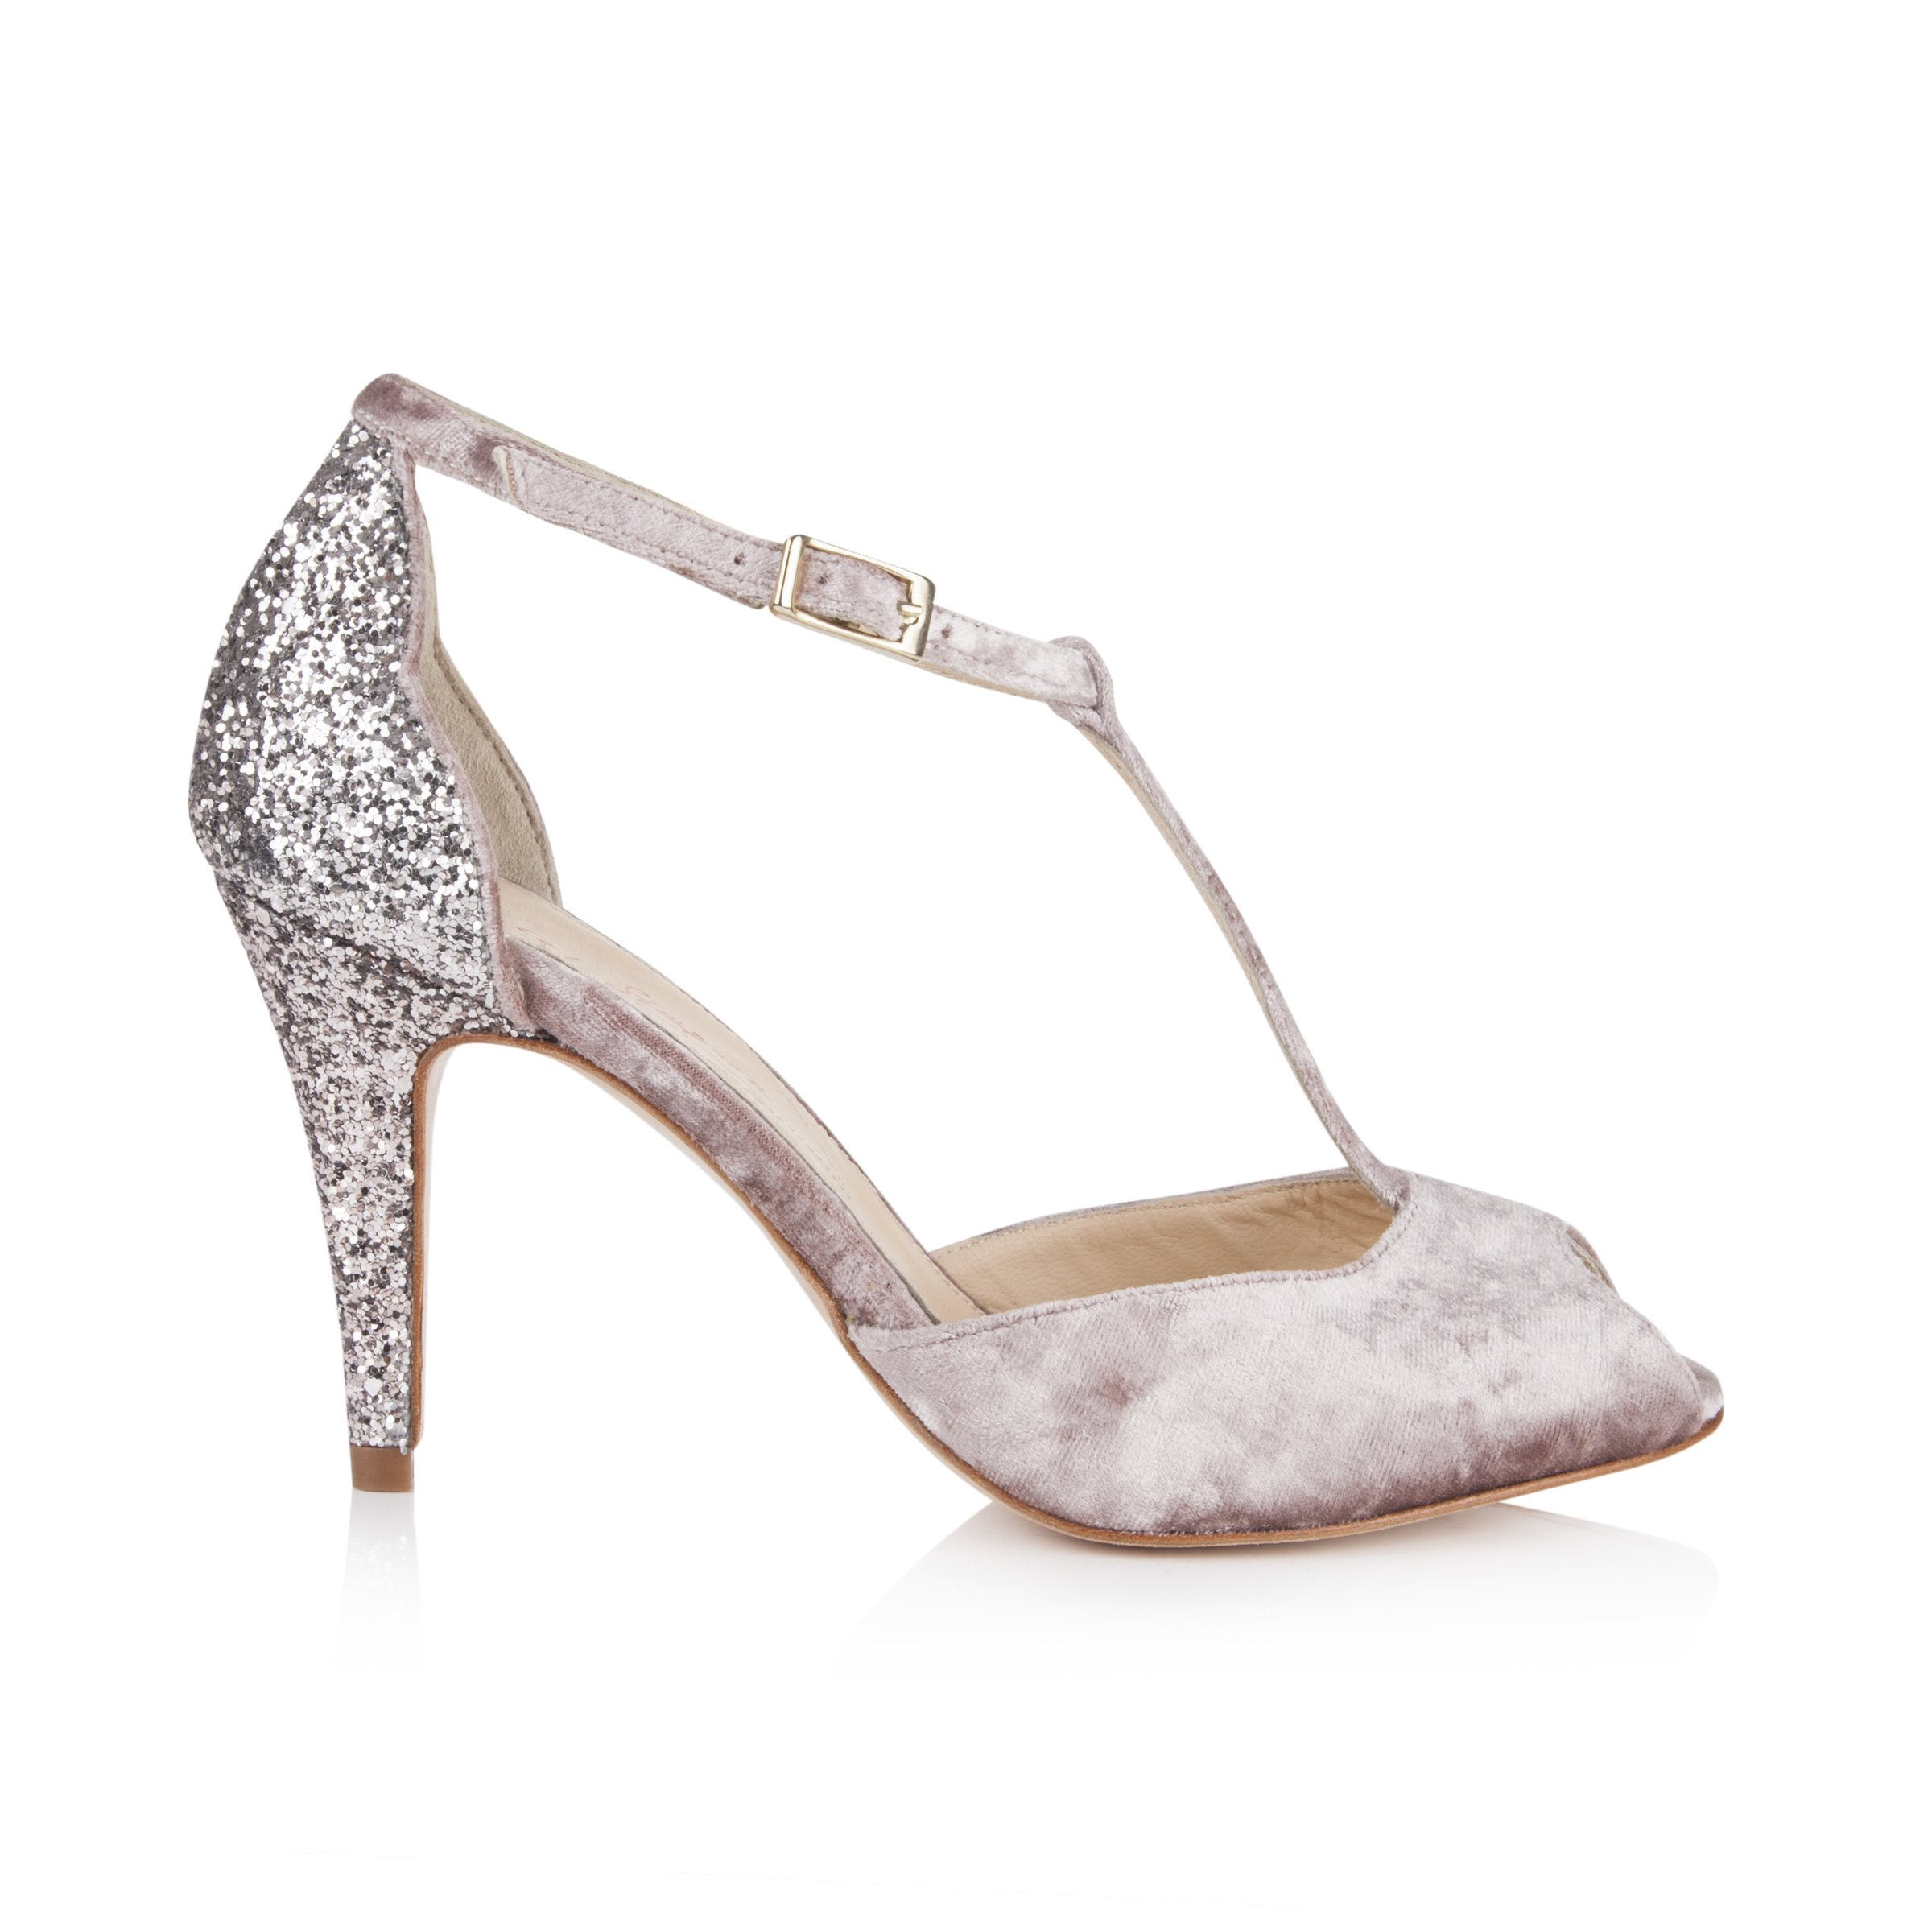 cc6857ee79fe bridal shoes Archives - Find Your Dream Dress